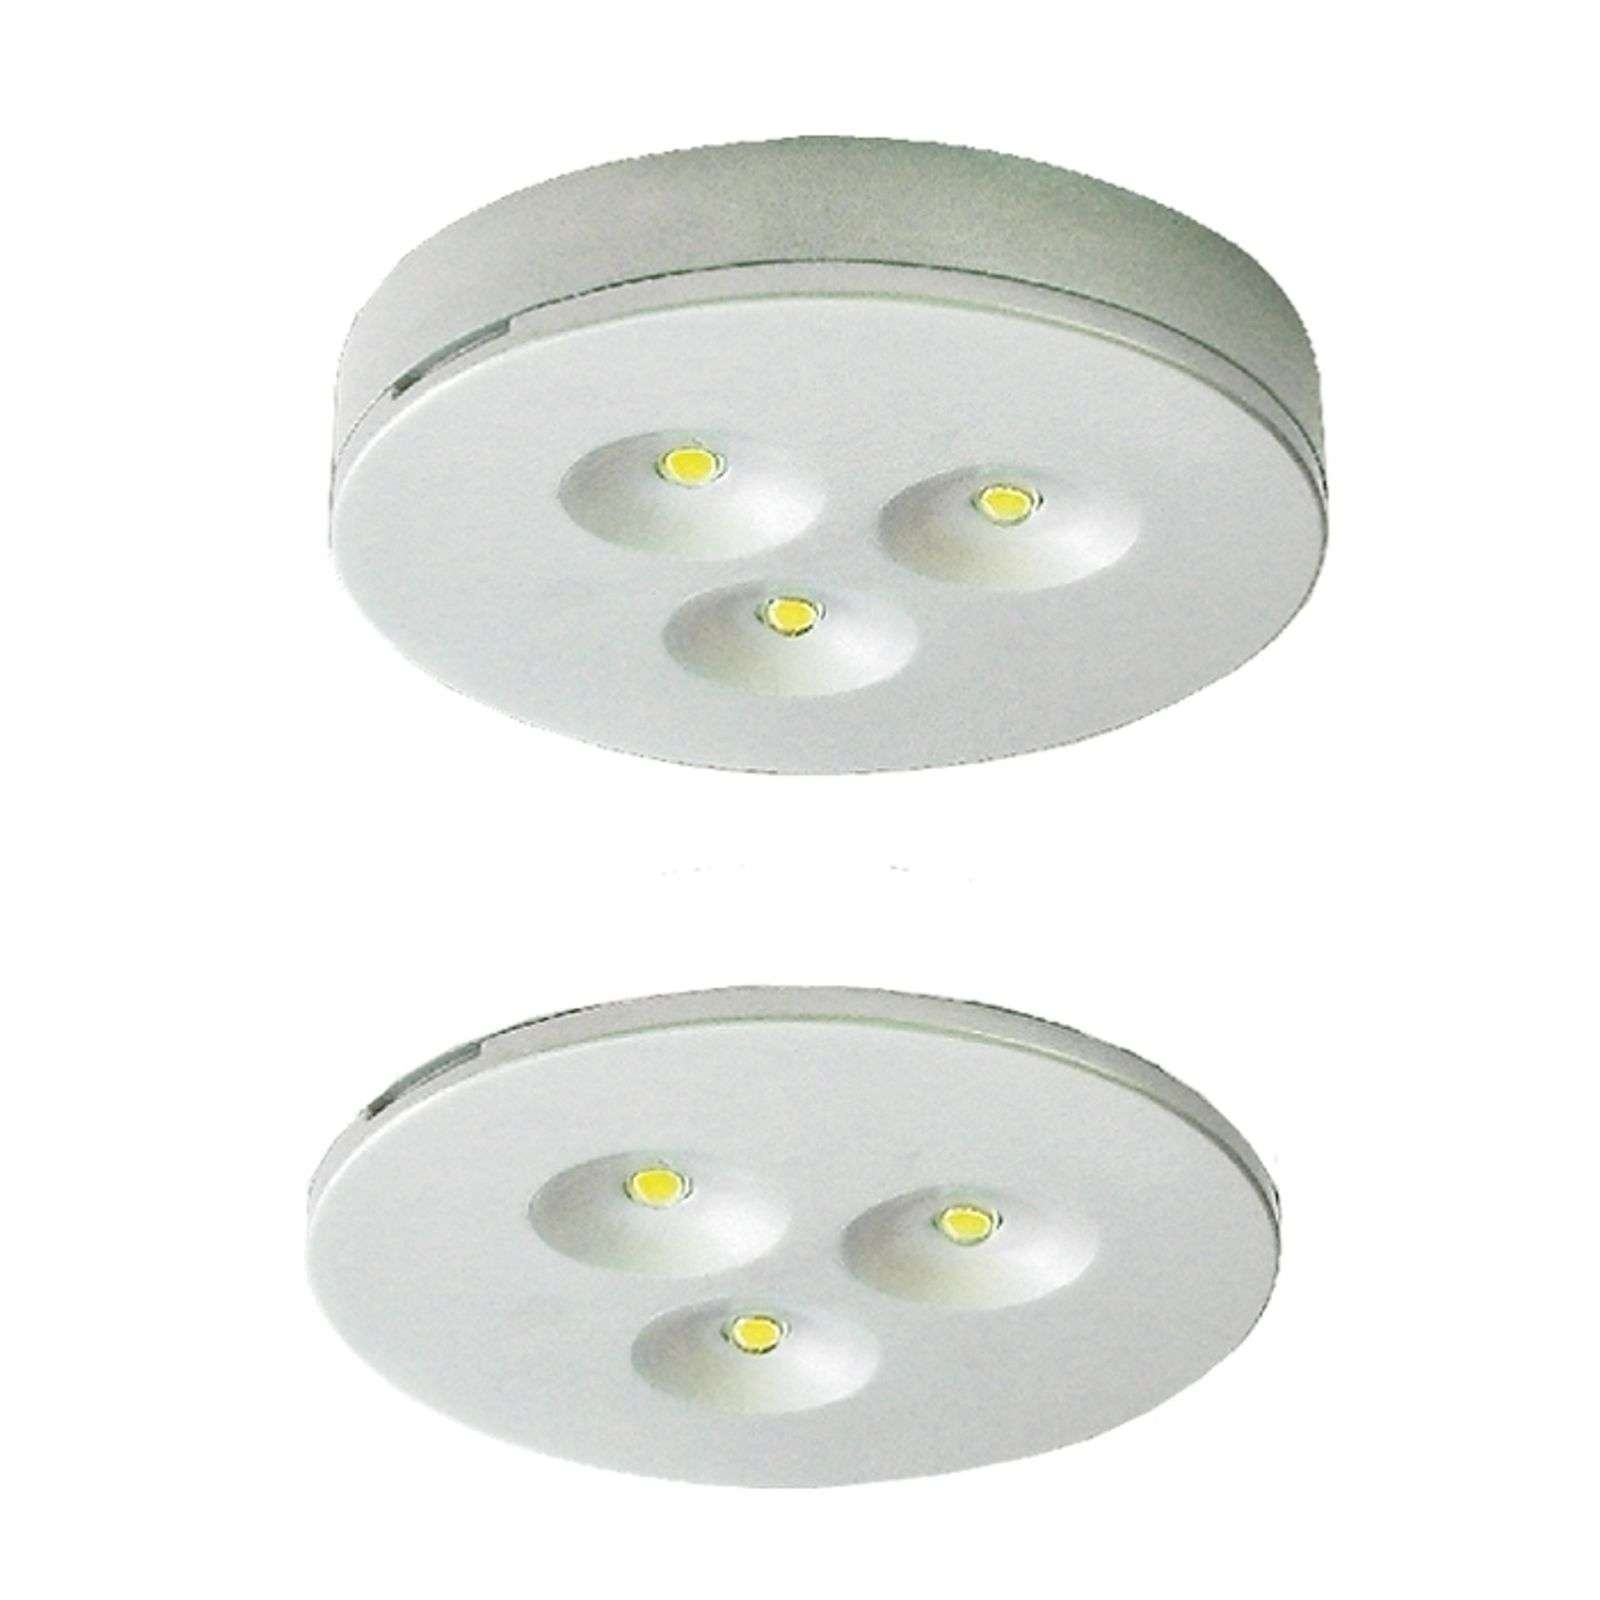 LED under-cabinet light Tito, daylight